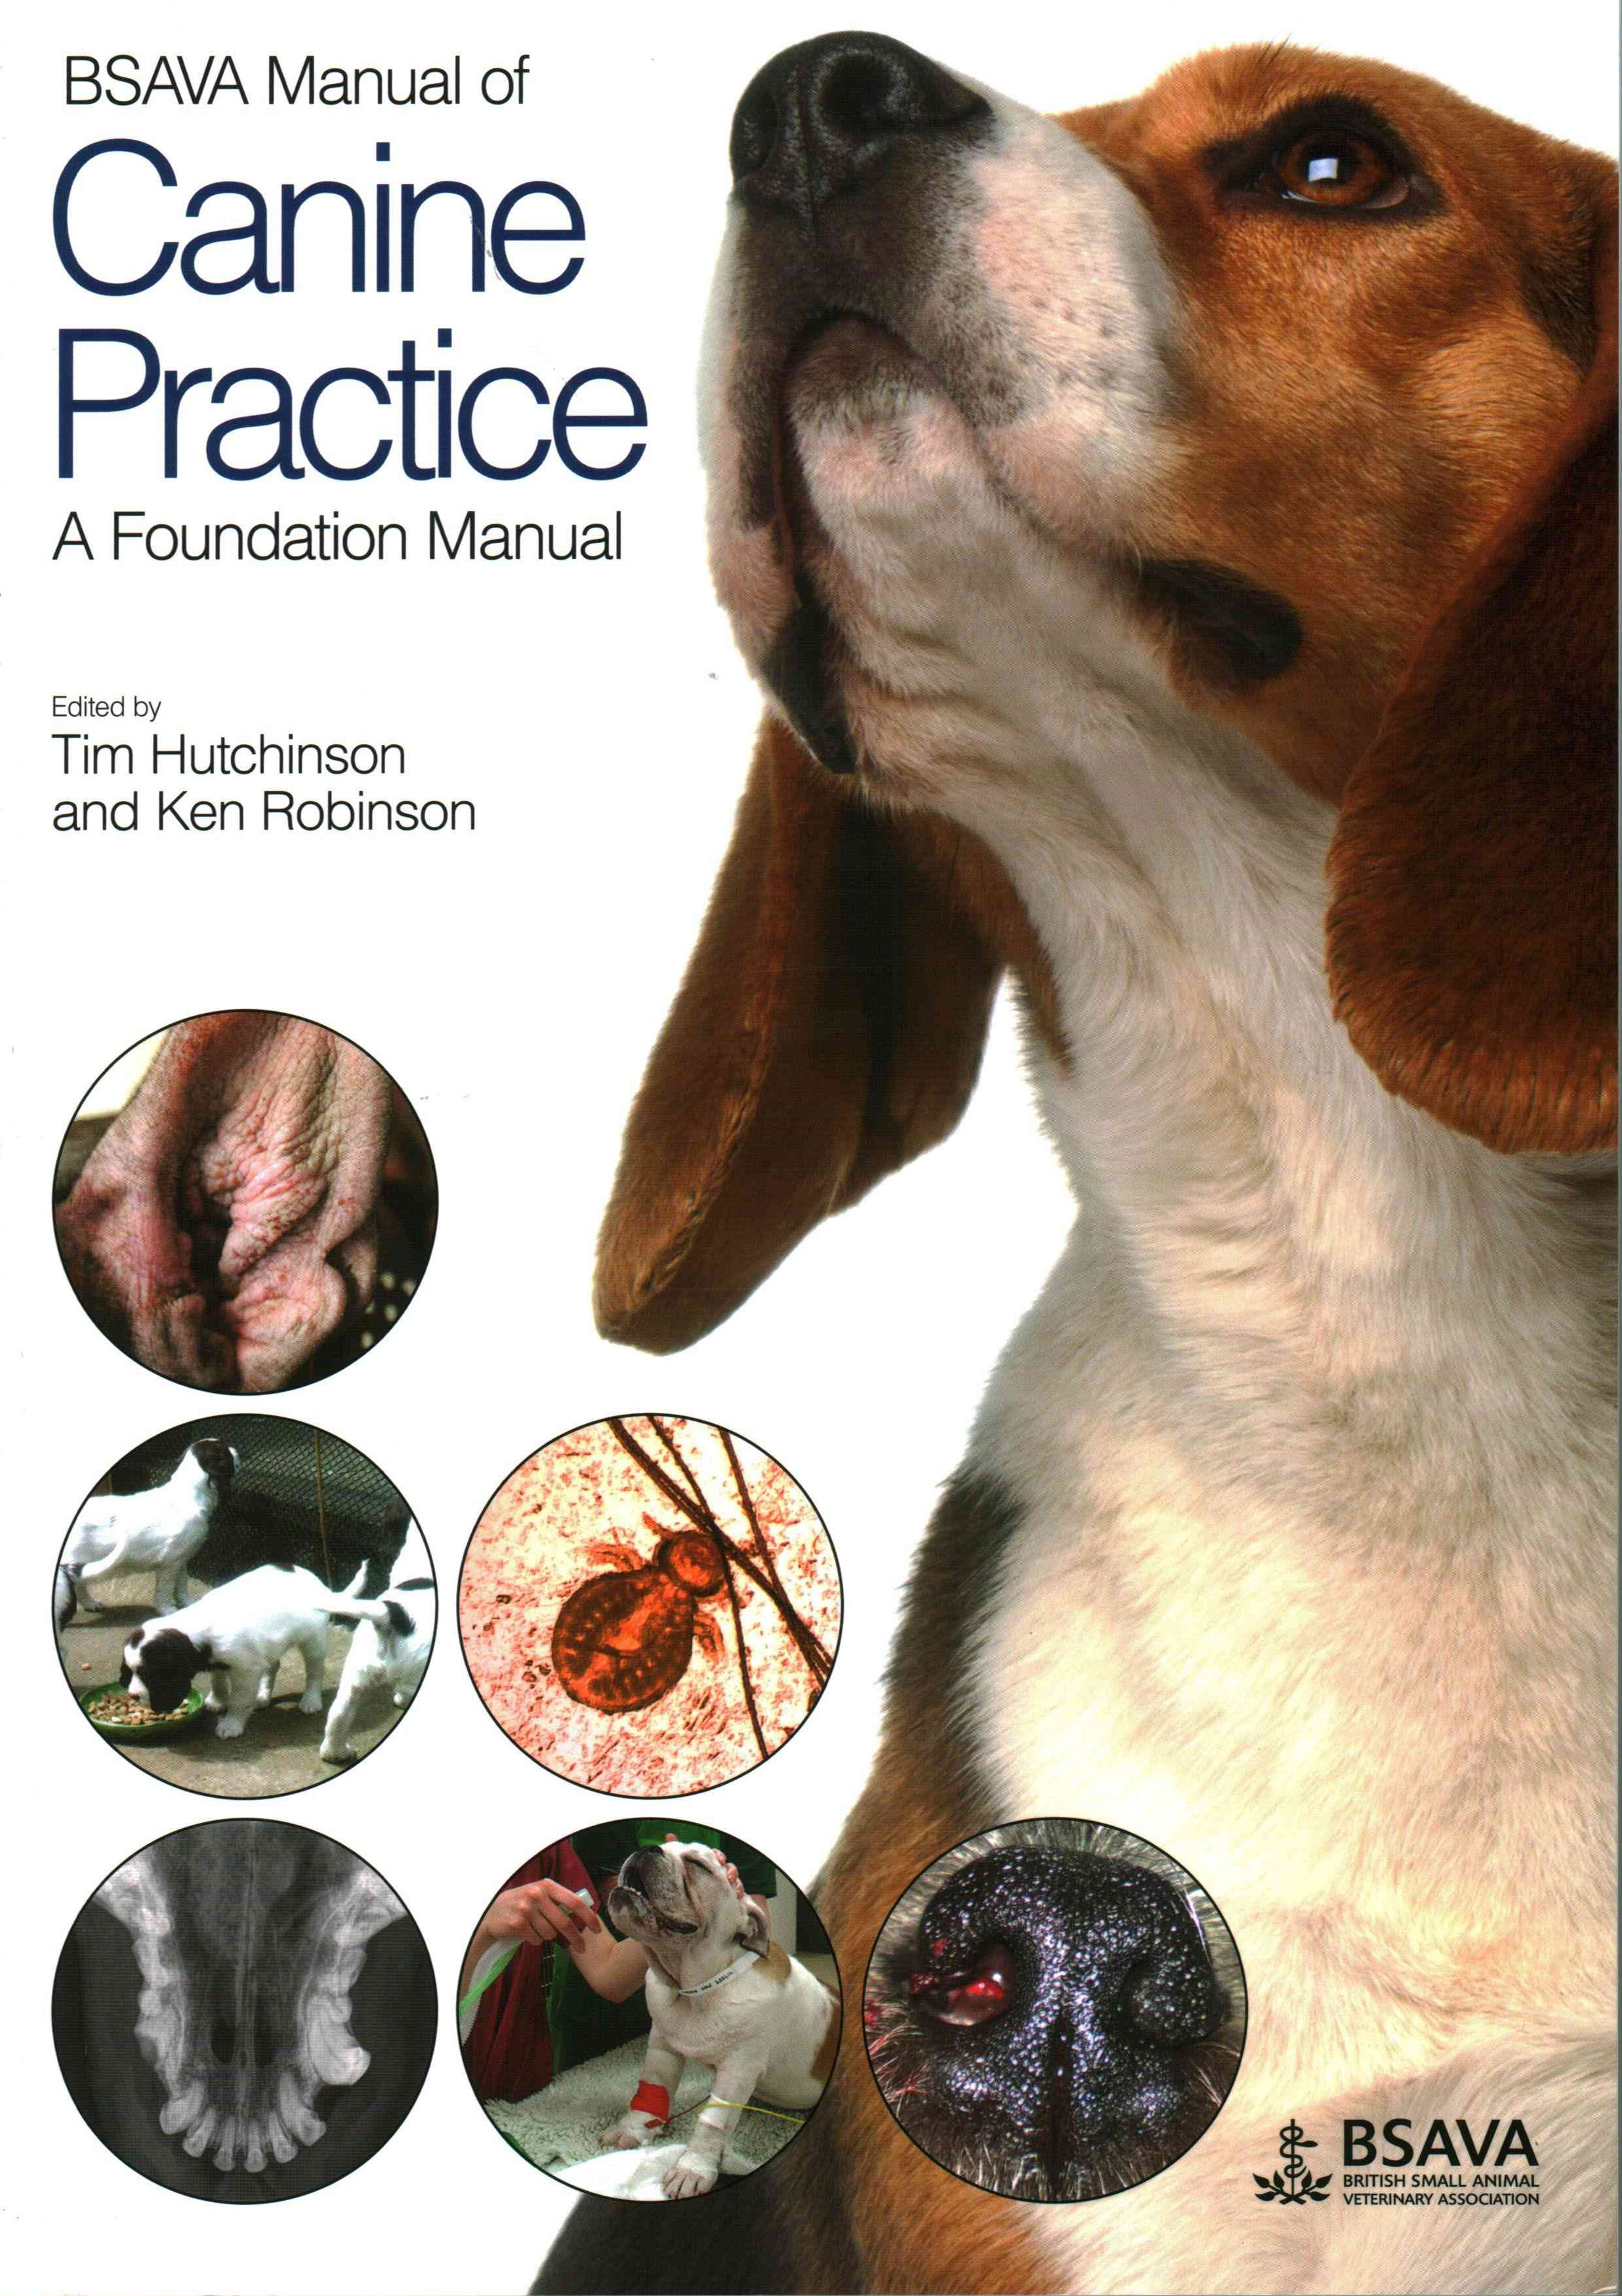 BSAVA Manual of Canine Practice - a Foundation    Manual